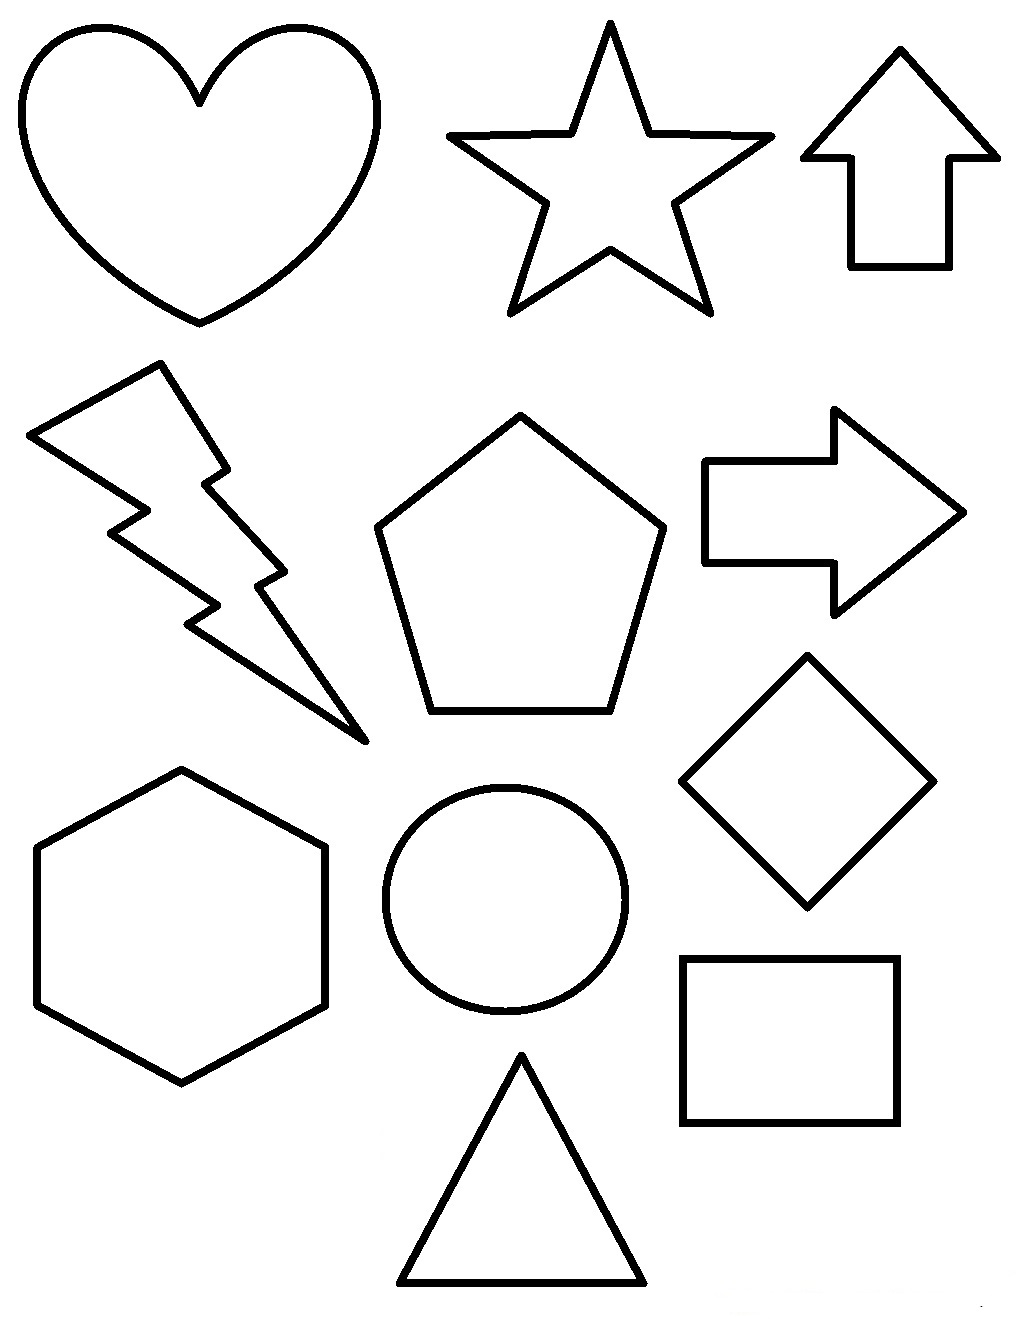 coloring pages of shapes geometric shapes cartoon coloring page coloring pages shapes of